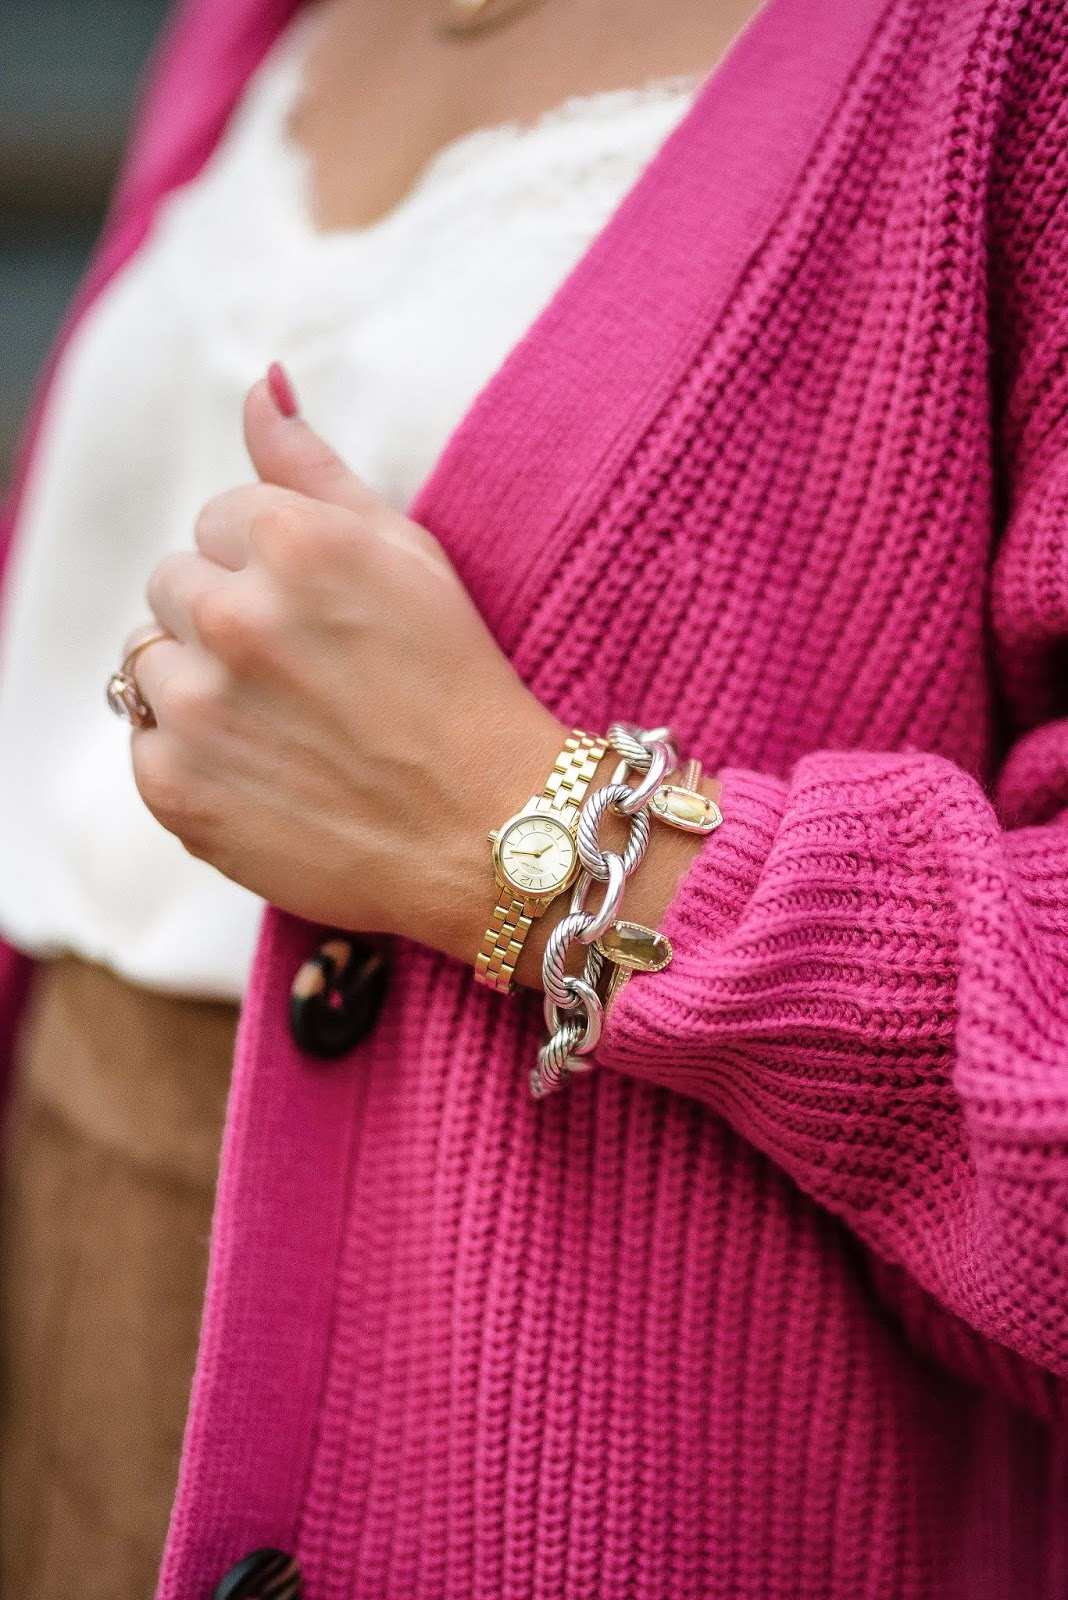 Michael Kors Petite Runway Gold Watch + Yurman Link Bracelet - Something Delightful Blog